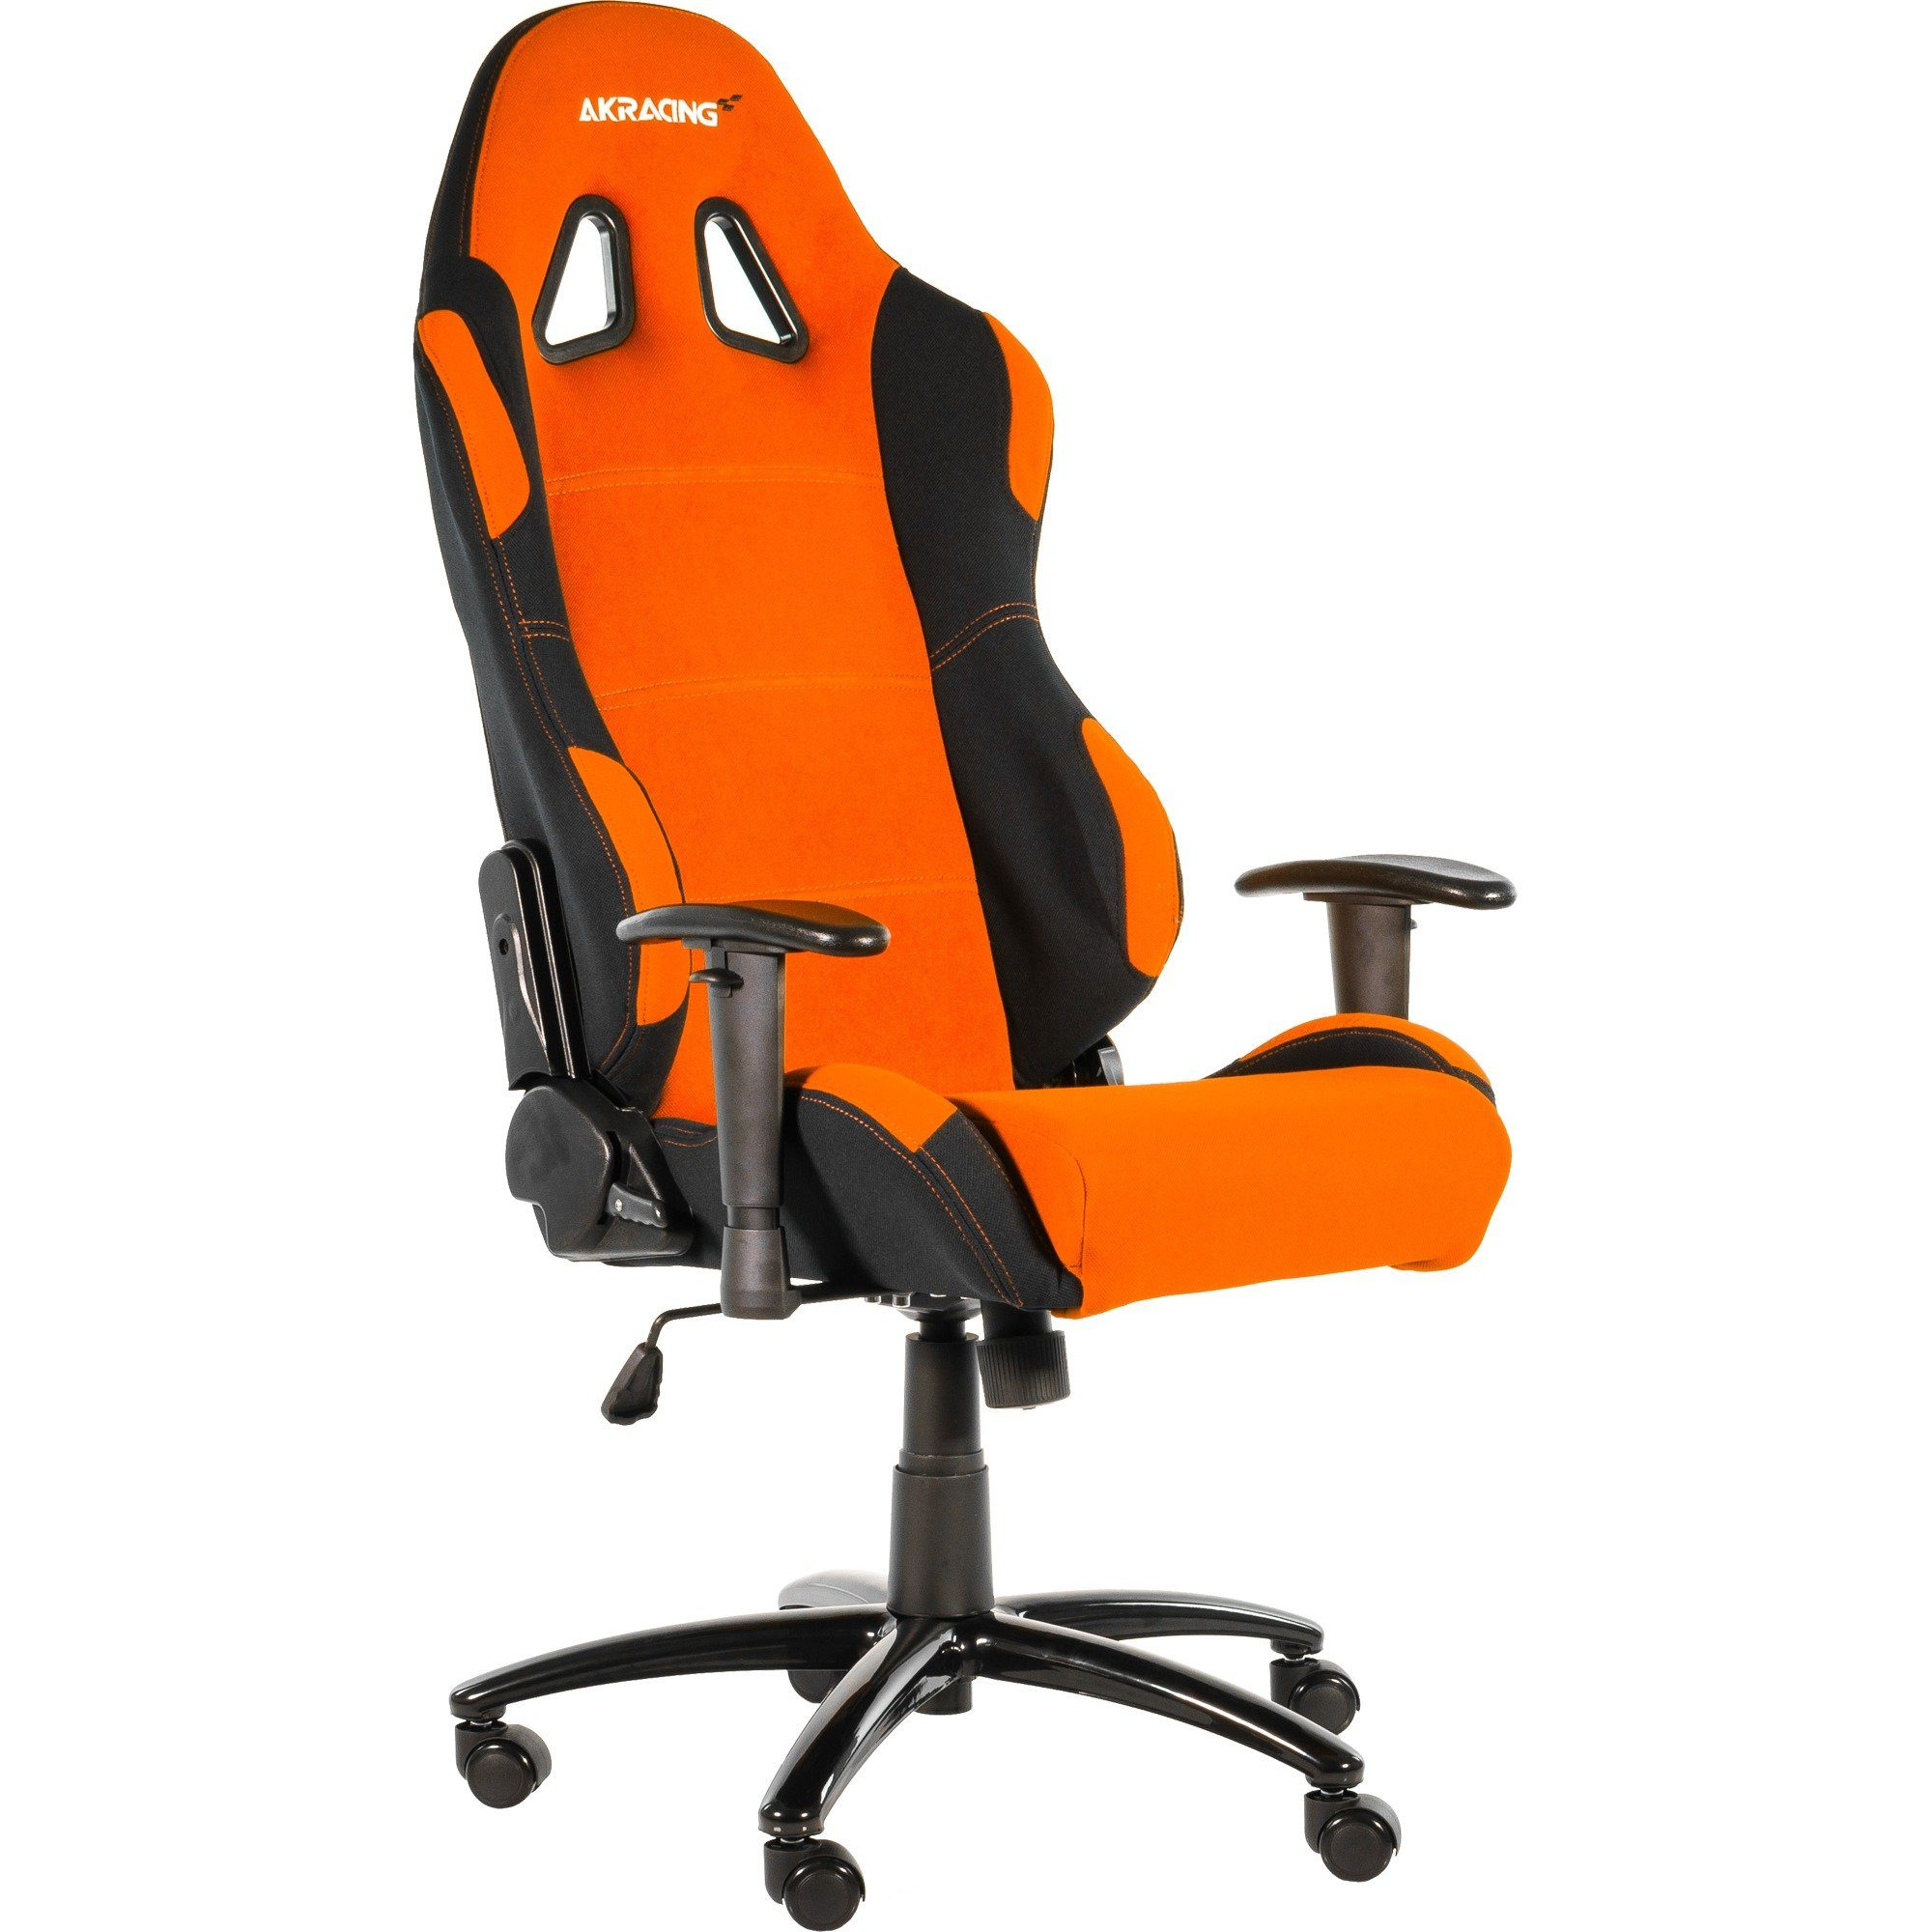 AKRACING Spielsitz »Prime Gaming Chair«